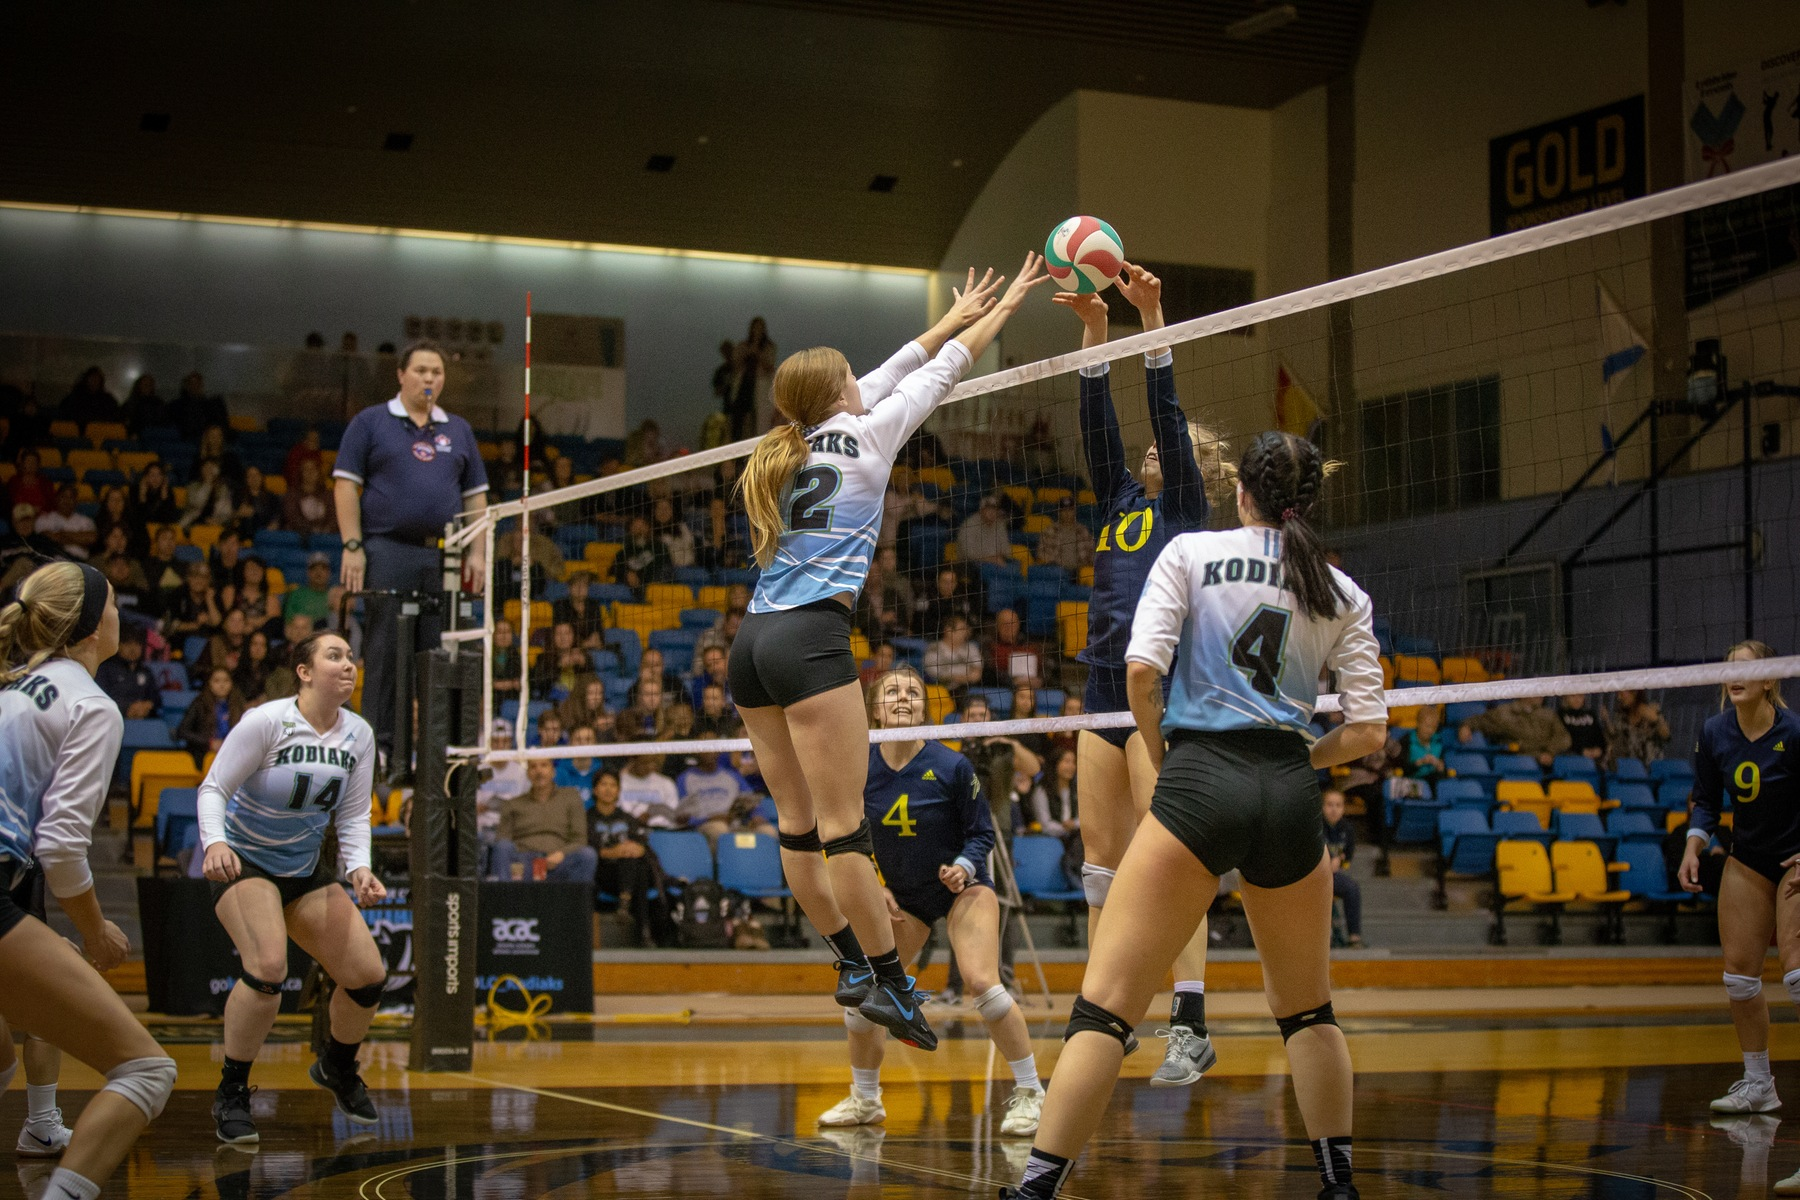 WVB | Clippers Clip Kodiaks in Five